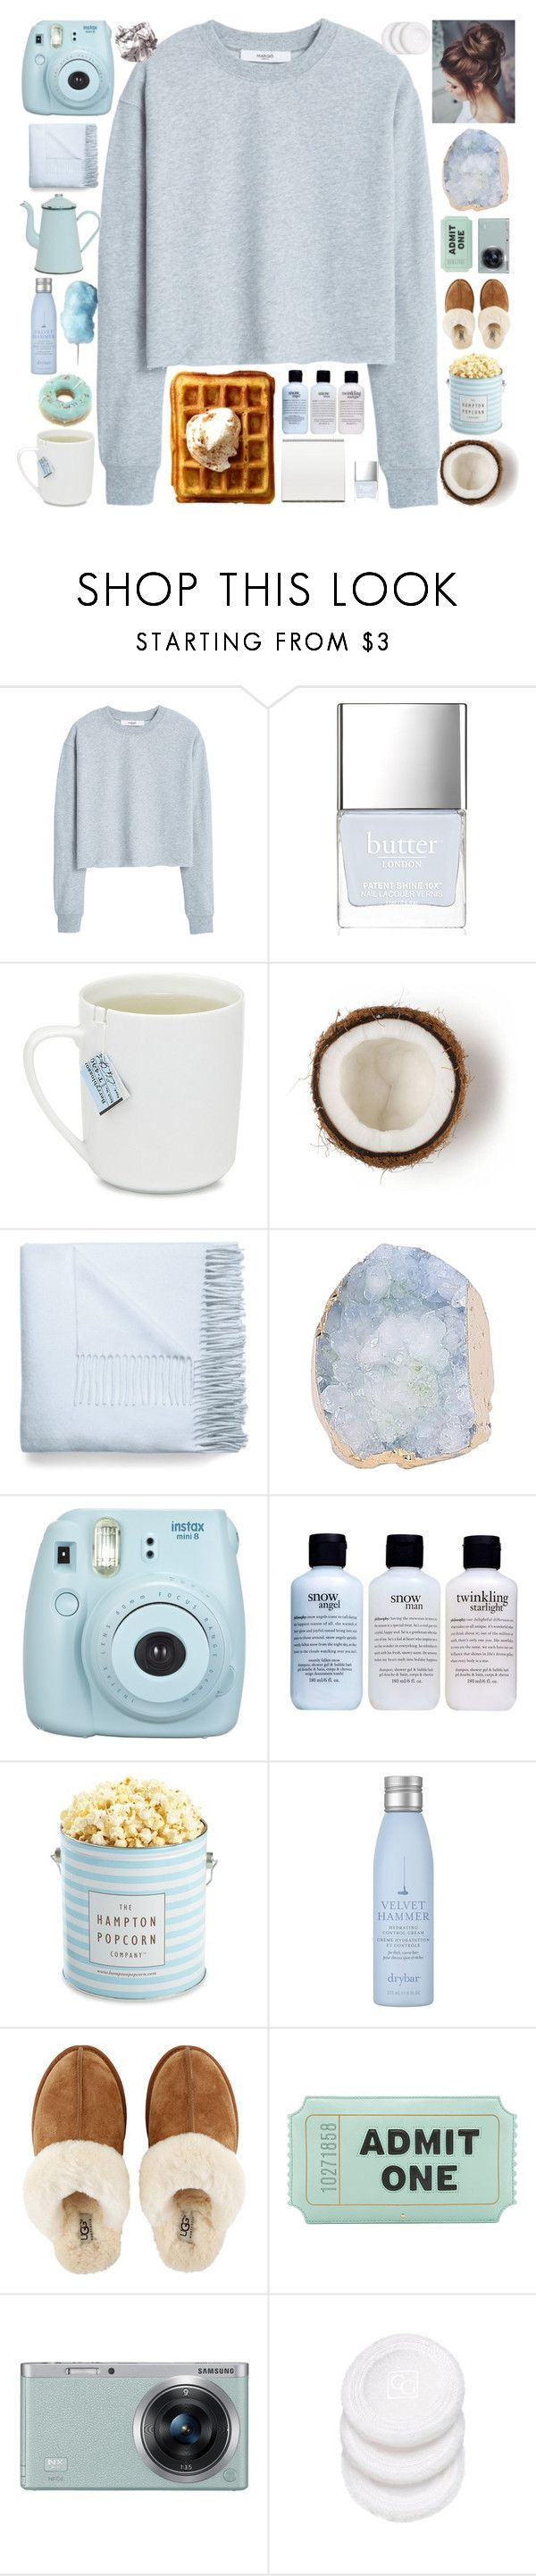 """Sky blue"" by roguedesigner21 ❤ liked on Polyvore featuring MANGO, Butter London, Acne Studios, Fujifilm, philosophy, The Hampton Popcorn Company, Drybar, UGG, Kate Spade and Samsung"